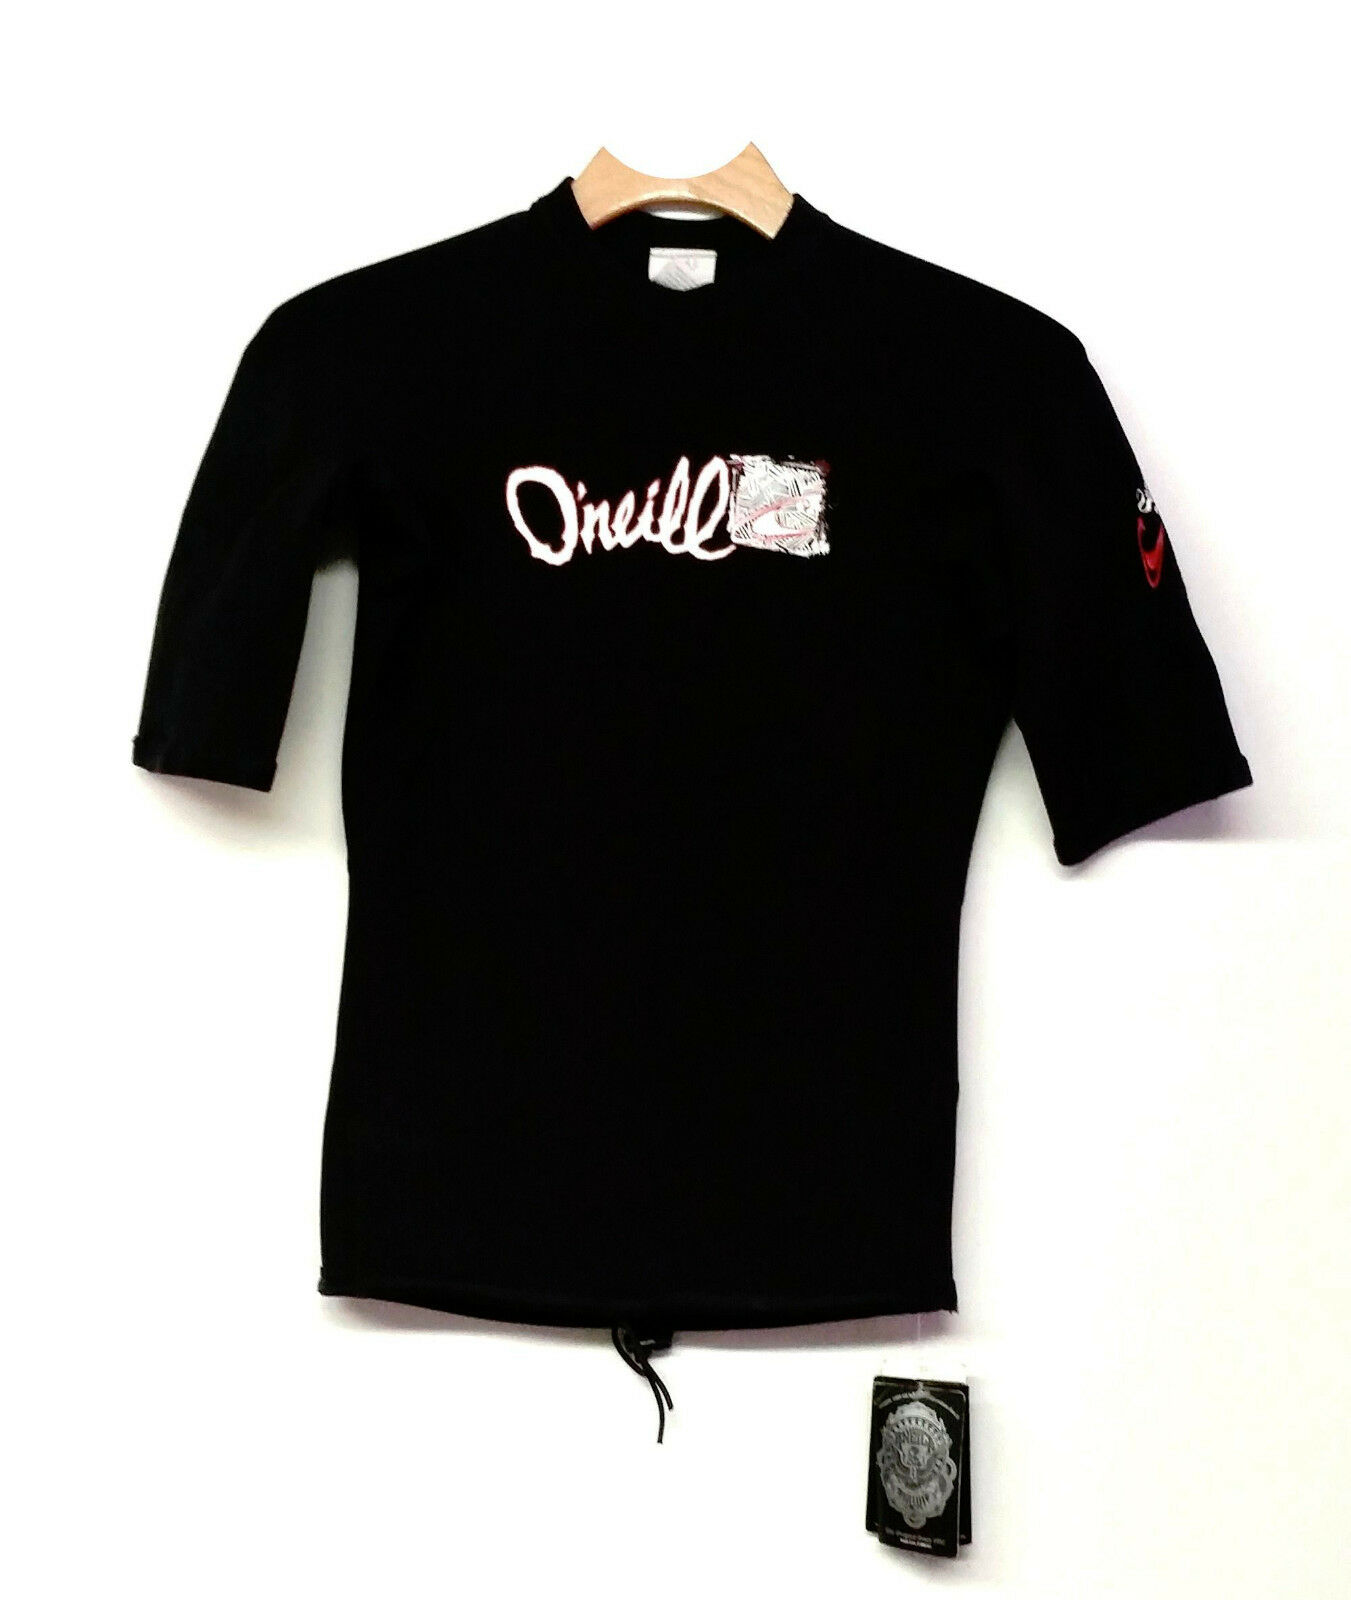 O'NEILL Men's .5mm THINSKINS SUPERFREAK Neoprene Top - BLK BLK - Small - NWT